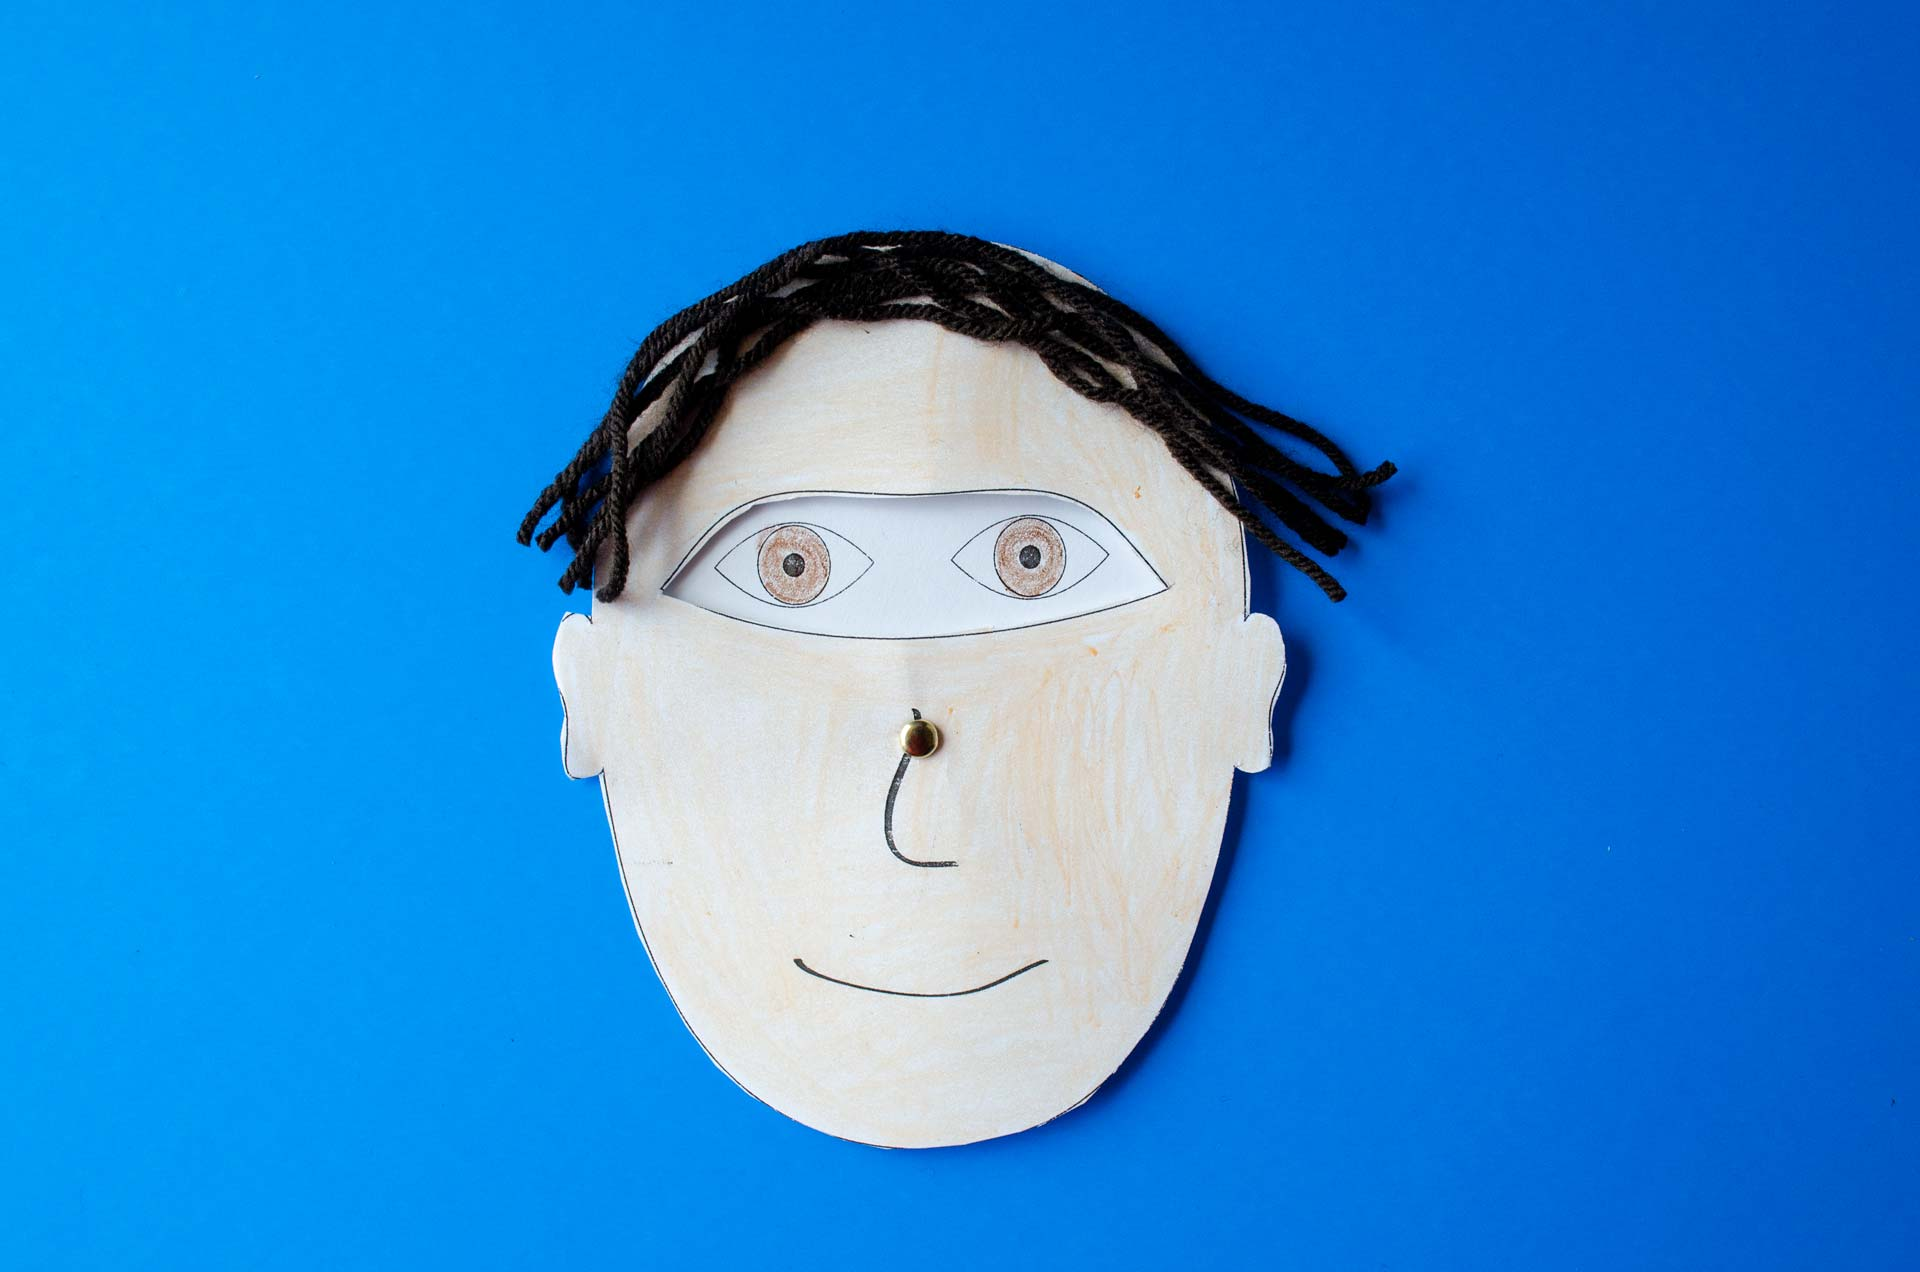 Eye wheel is attached to man illustration face.